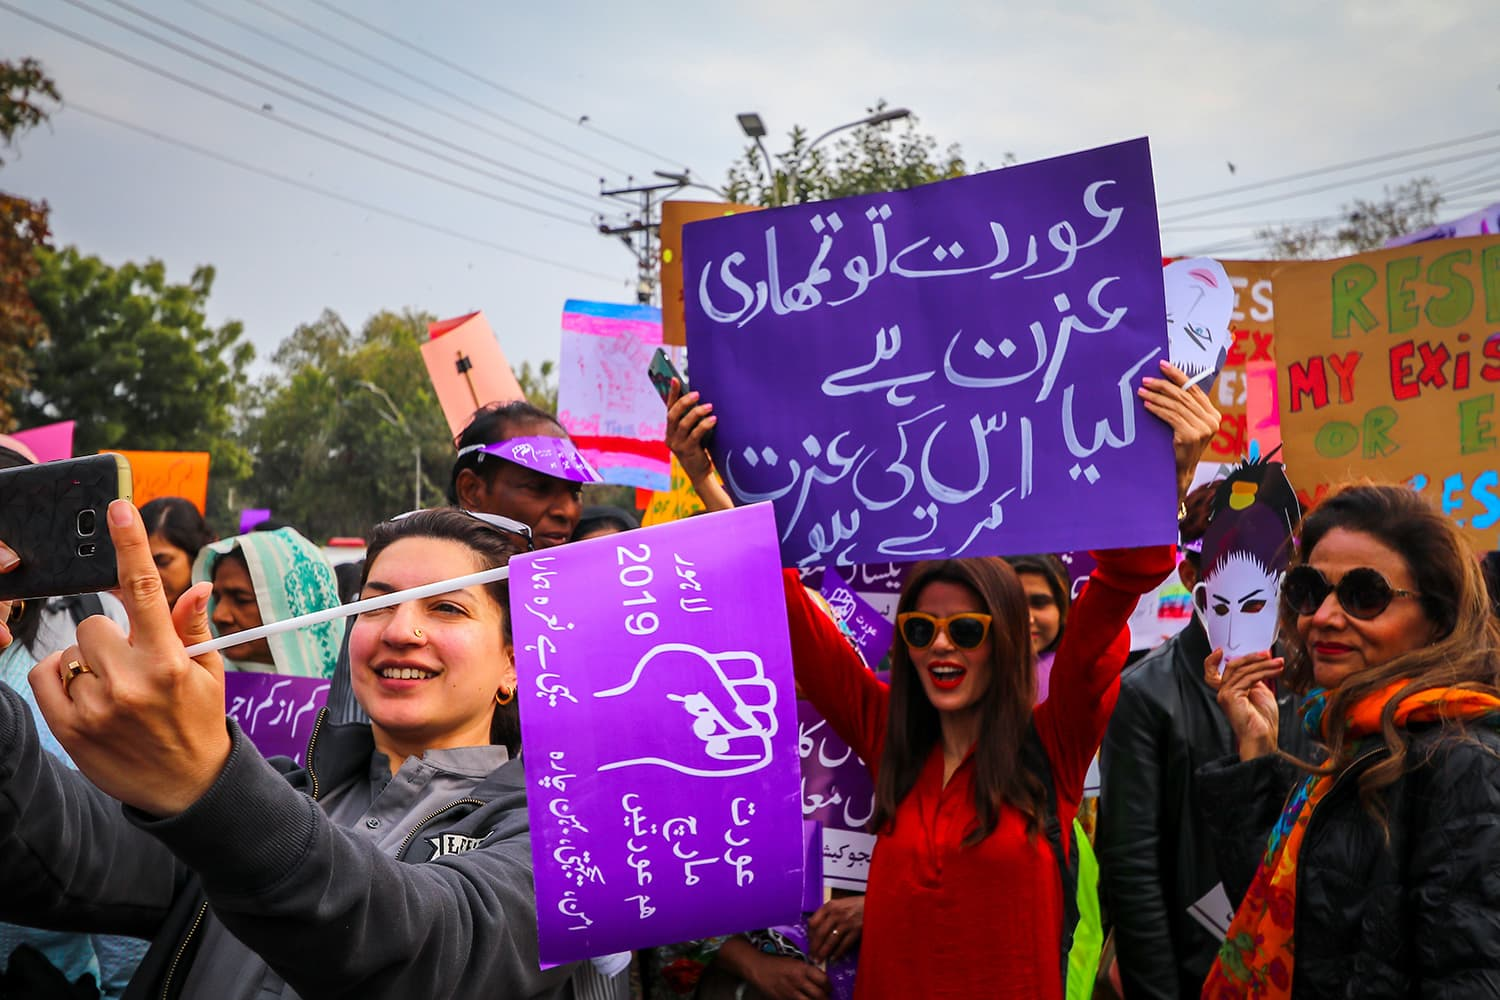 Protesters at Aurat March 2019 in Lahore | Photo by Ema Anis, copyright Amnesty International